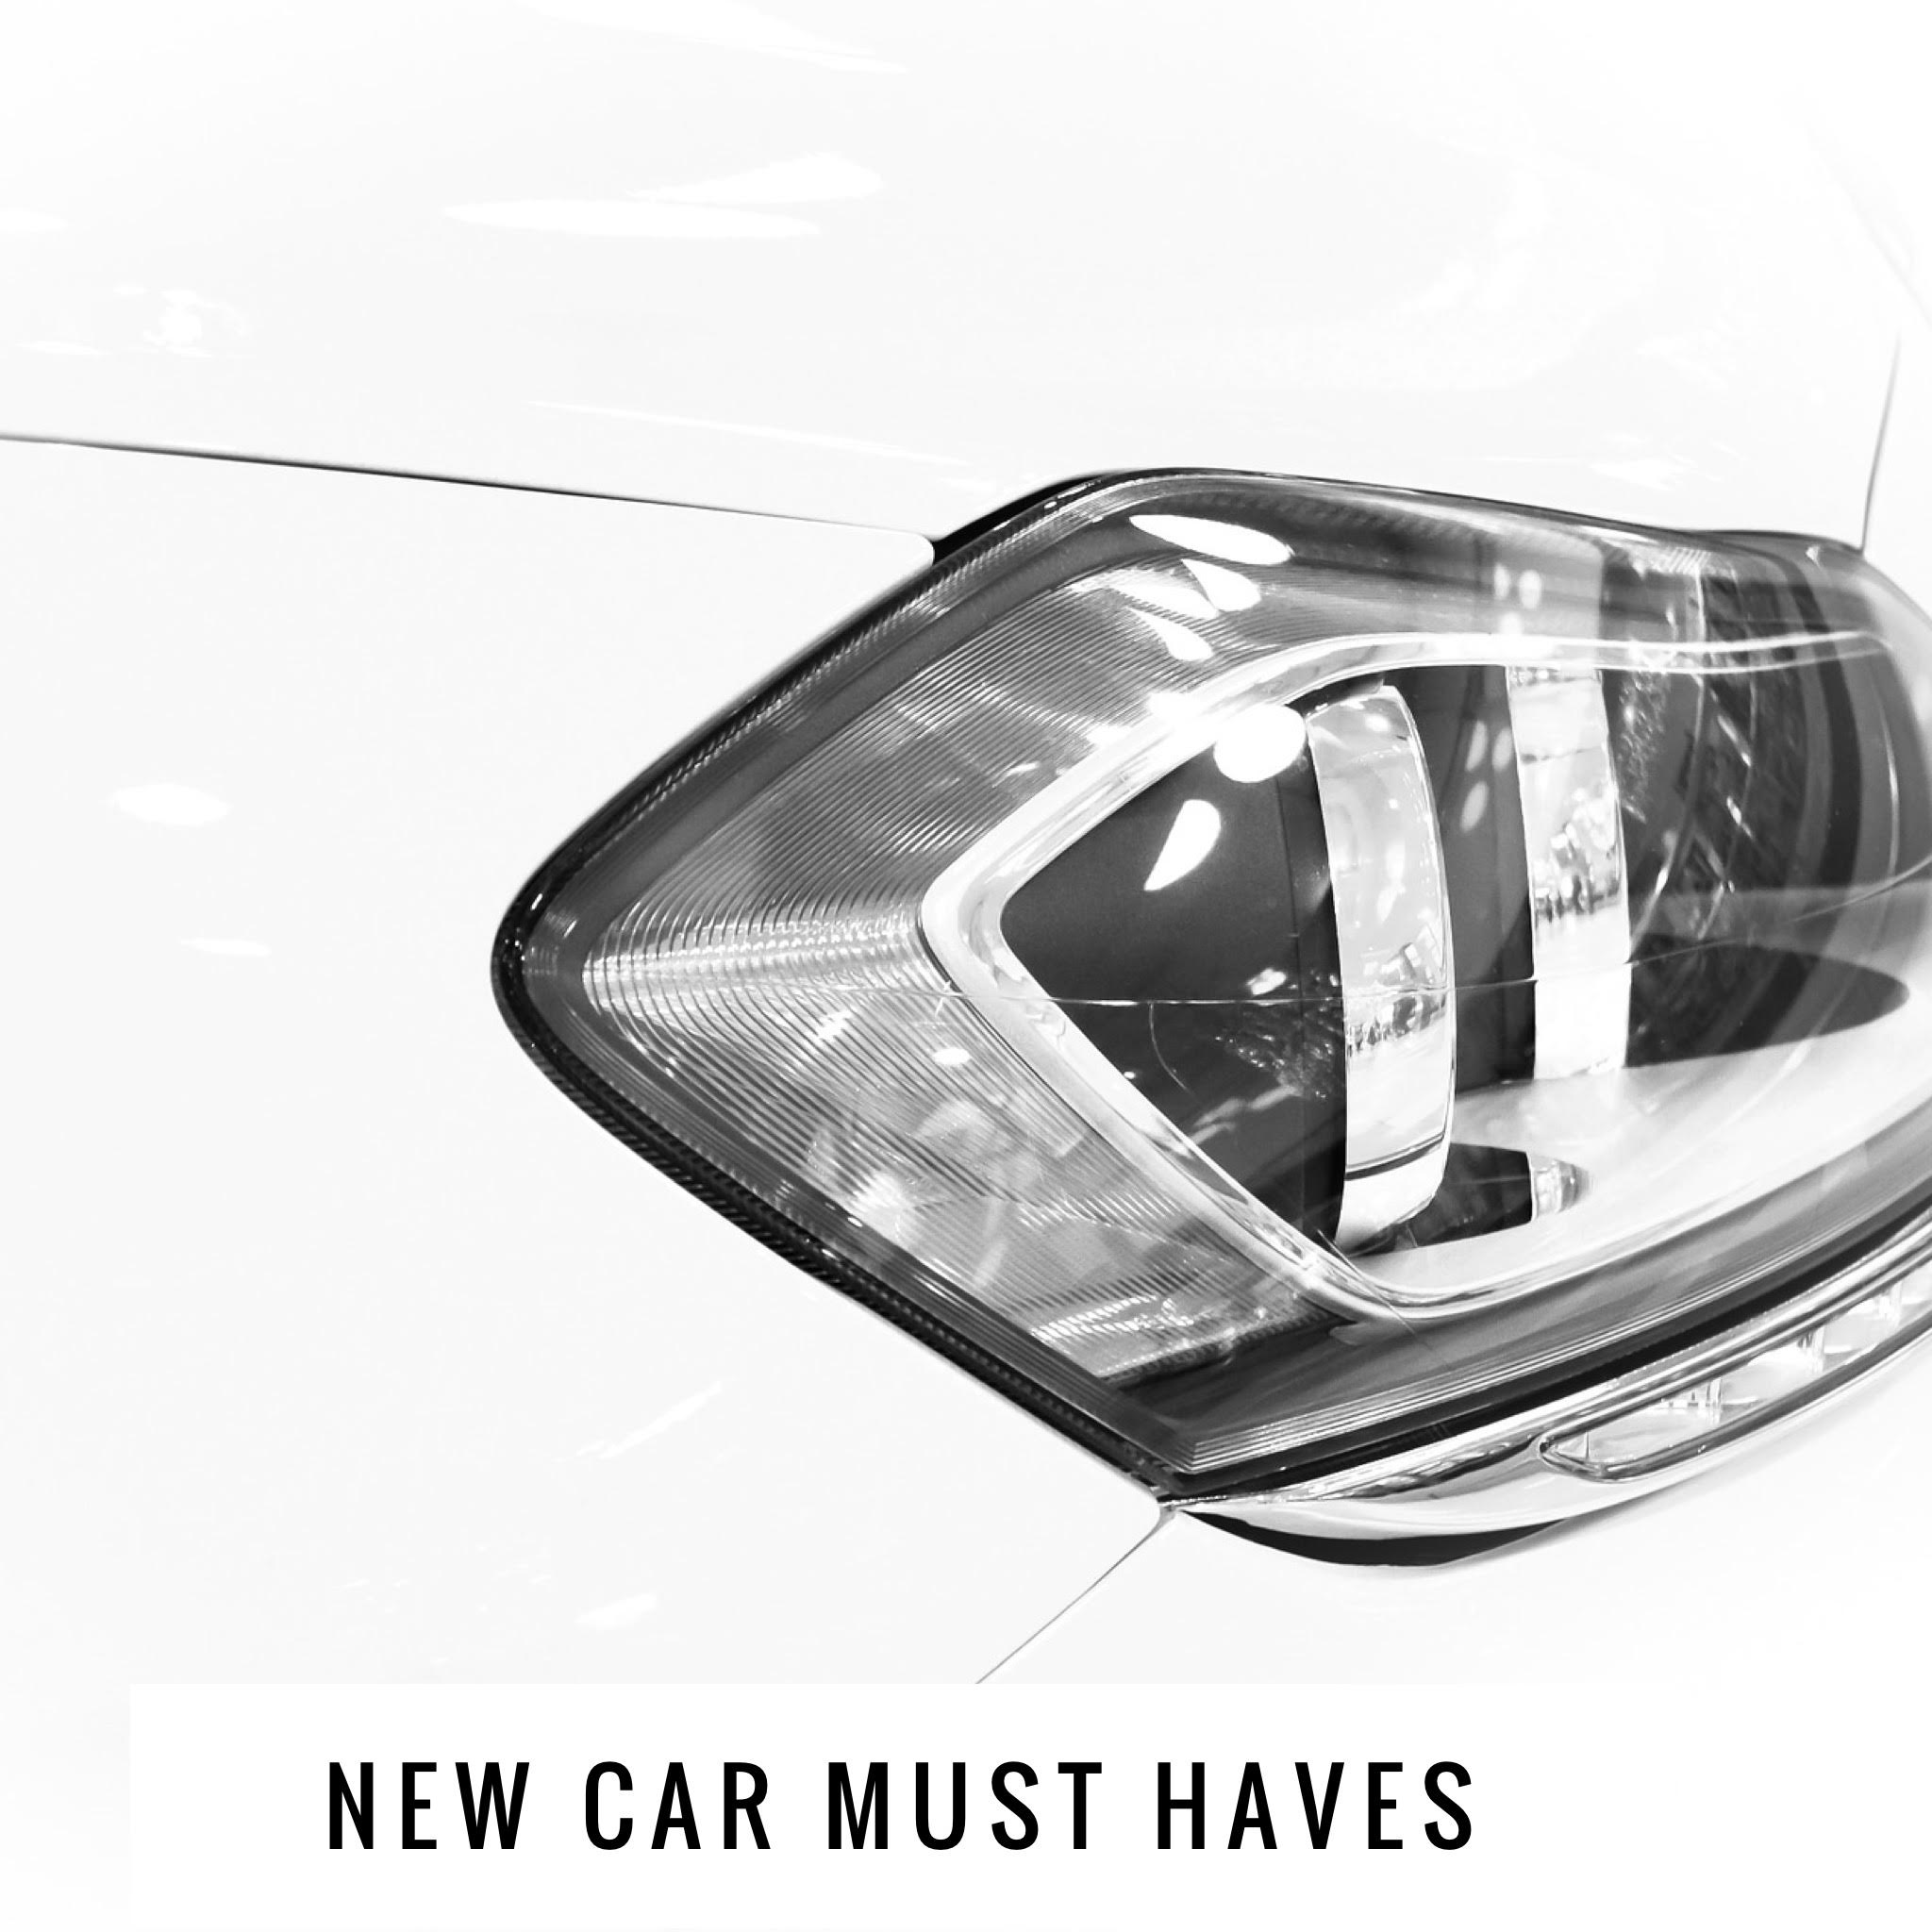 Your new car must haves.